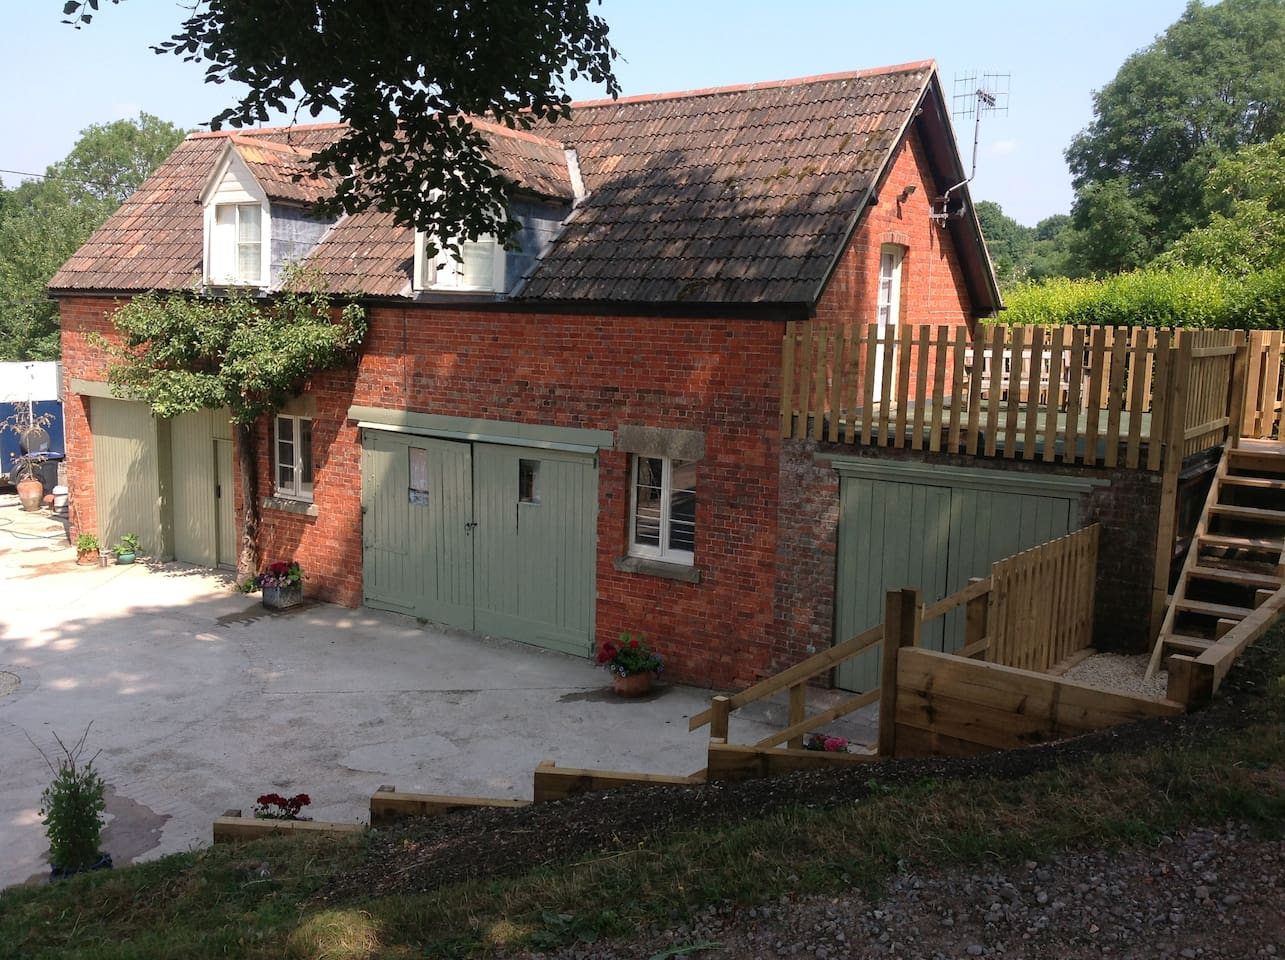 The Hayloft flat over our Victorian Coach House